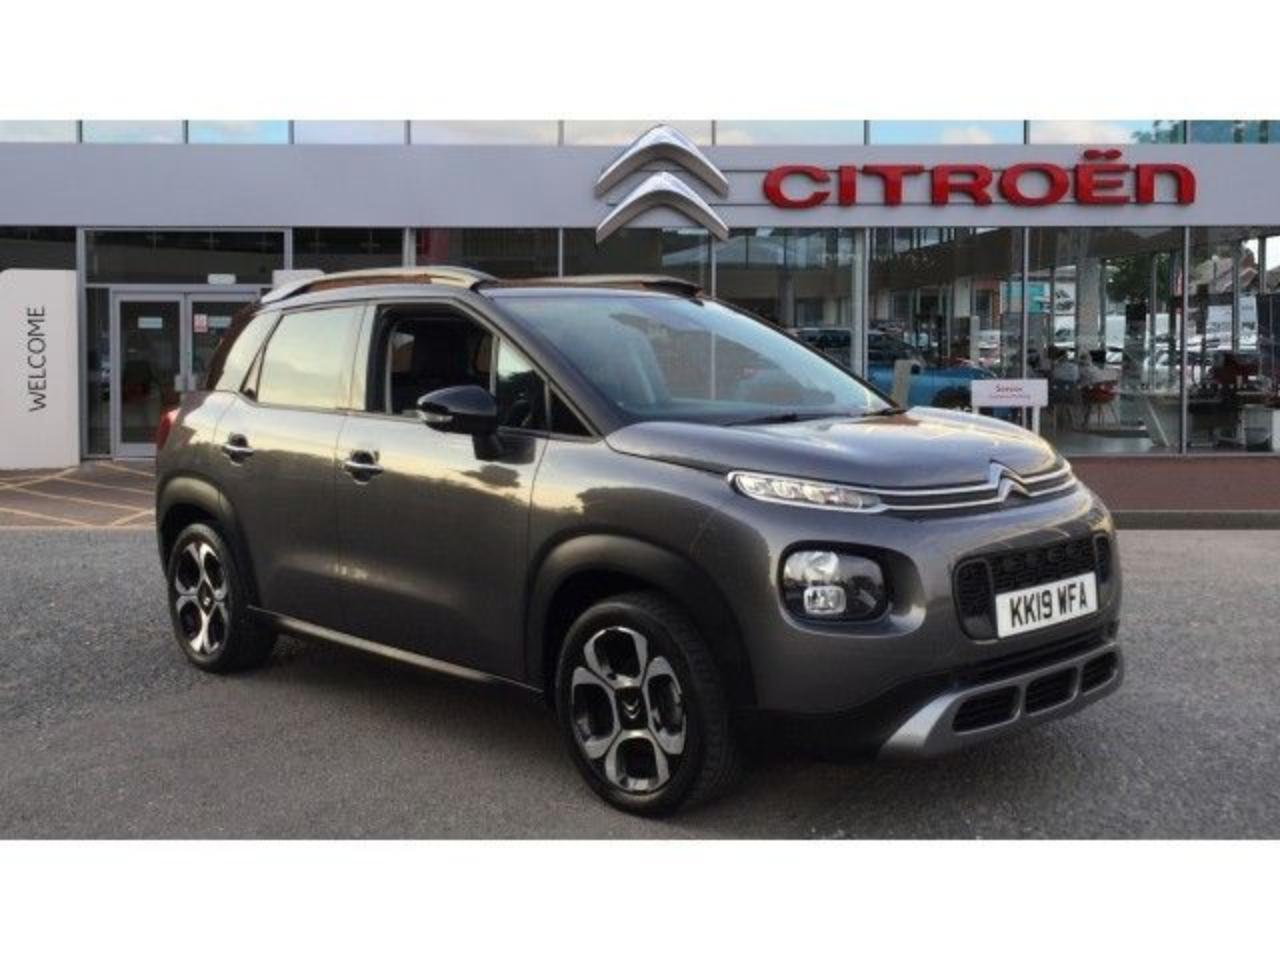 Citroën C3 Aircross 1.2 PureTech 110 Flair 5dr [6 speed] Petrol Hatchb